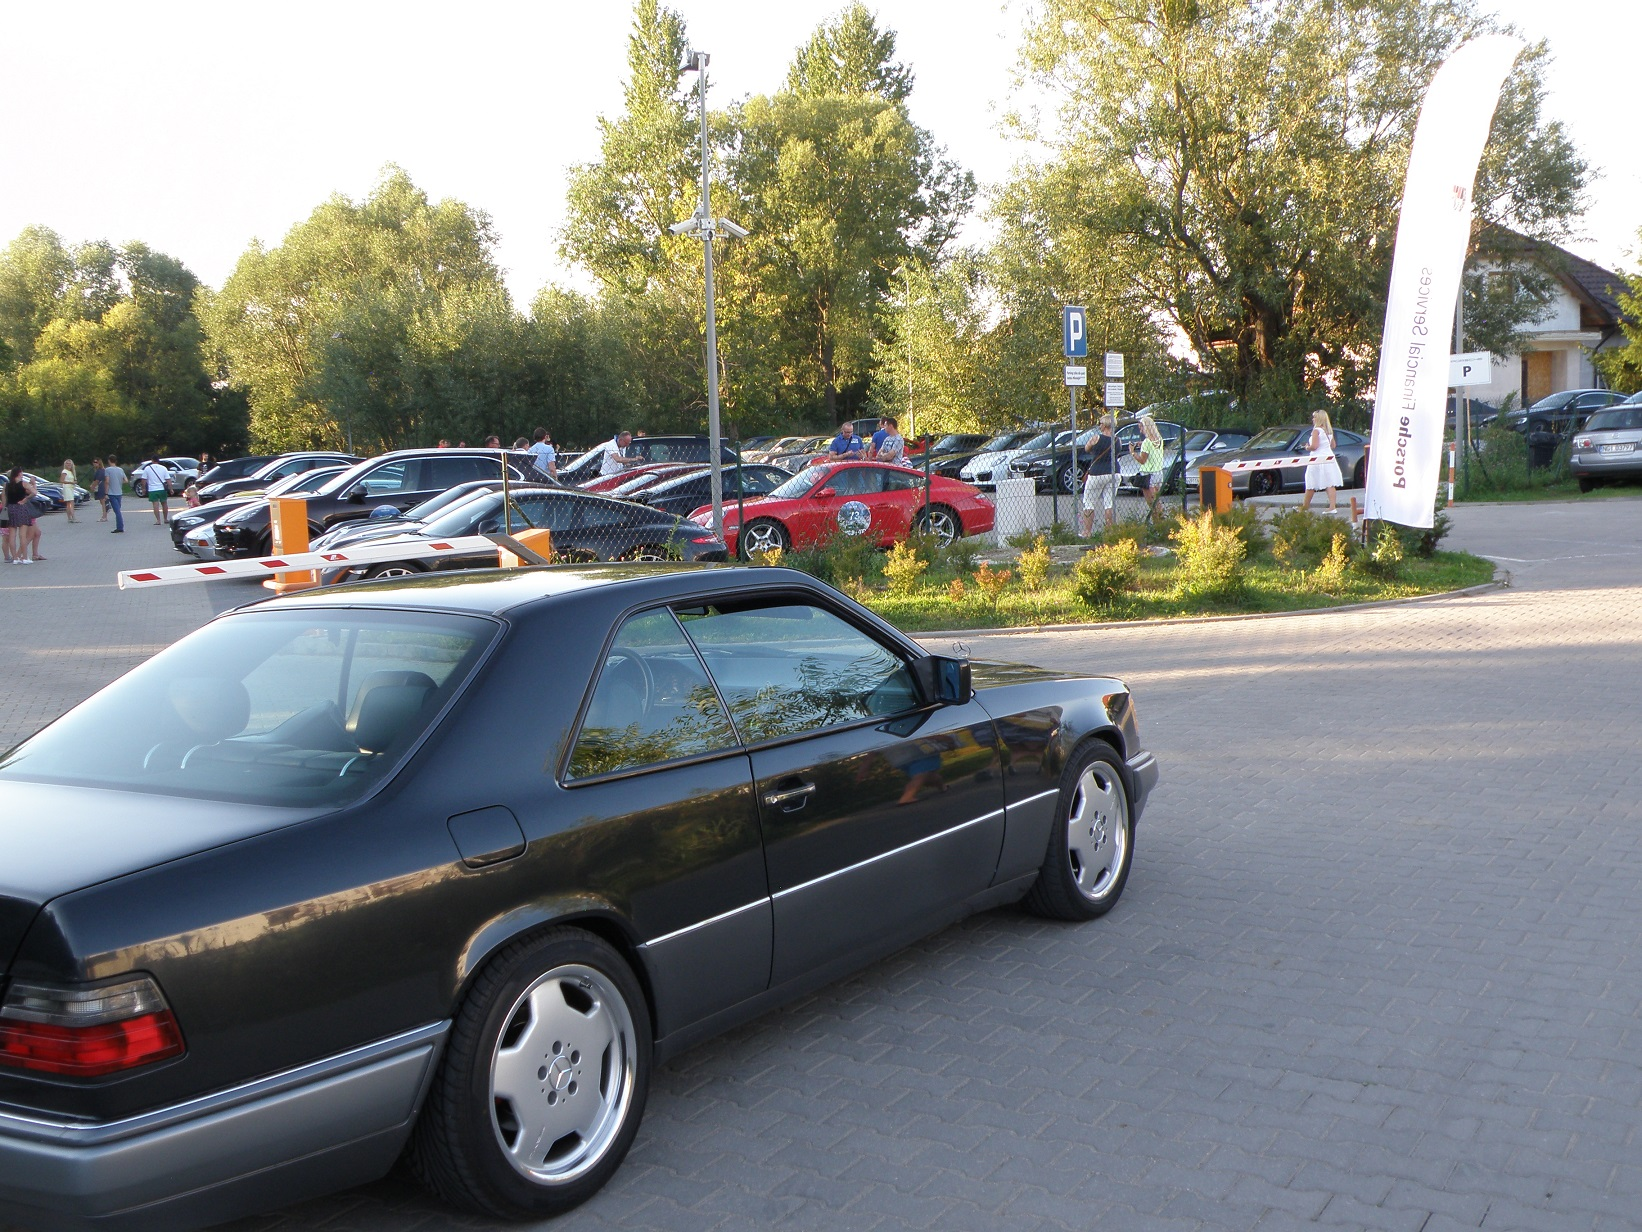 http://124coupe.pl/hosting/images/1472409367.jpg